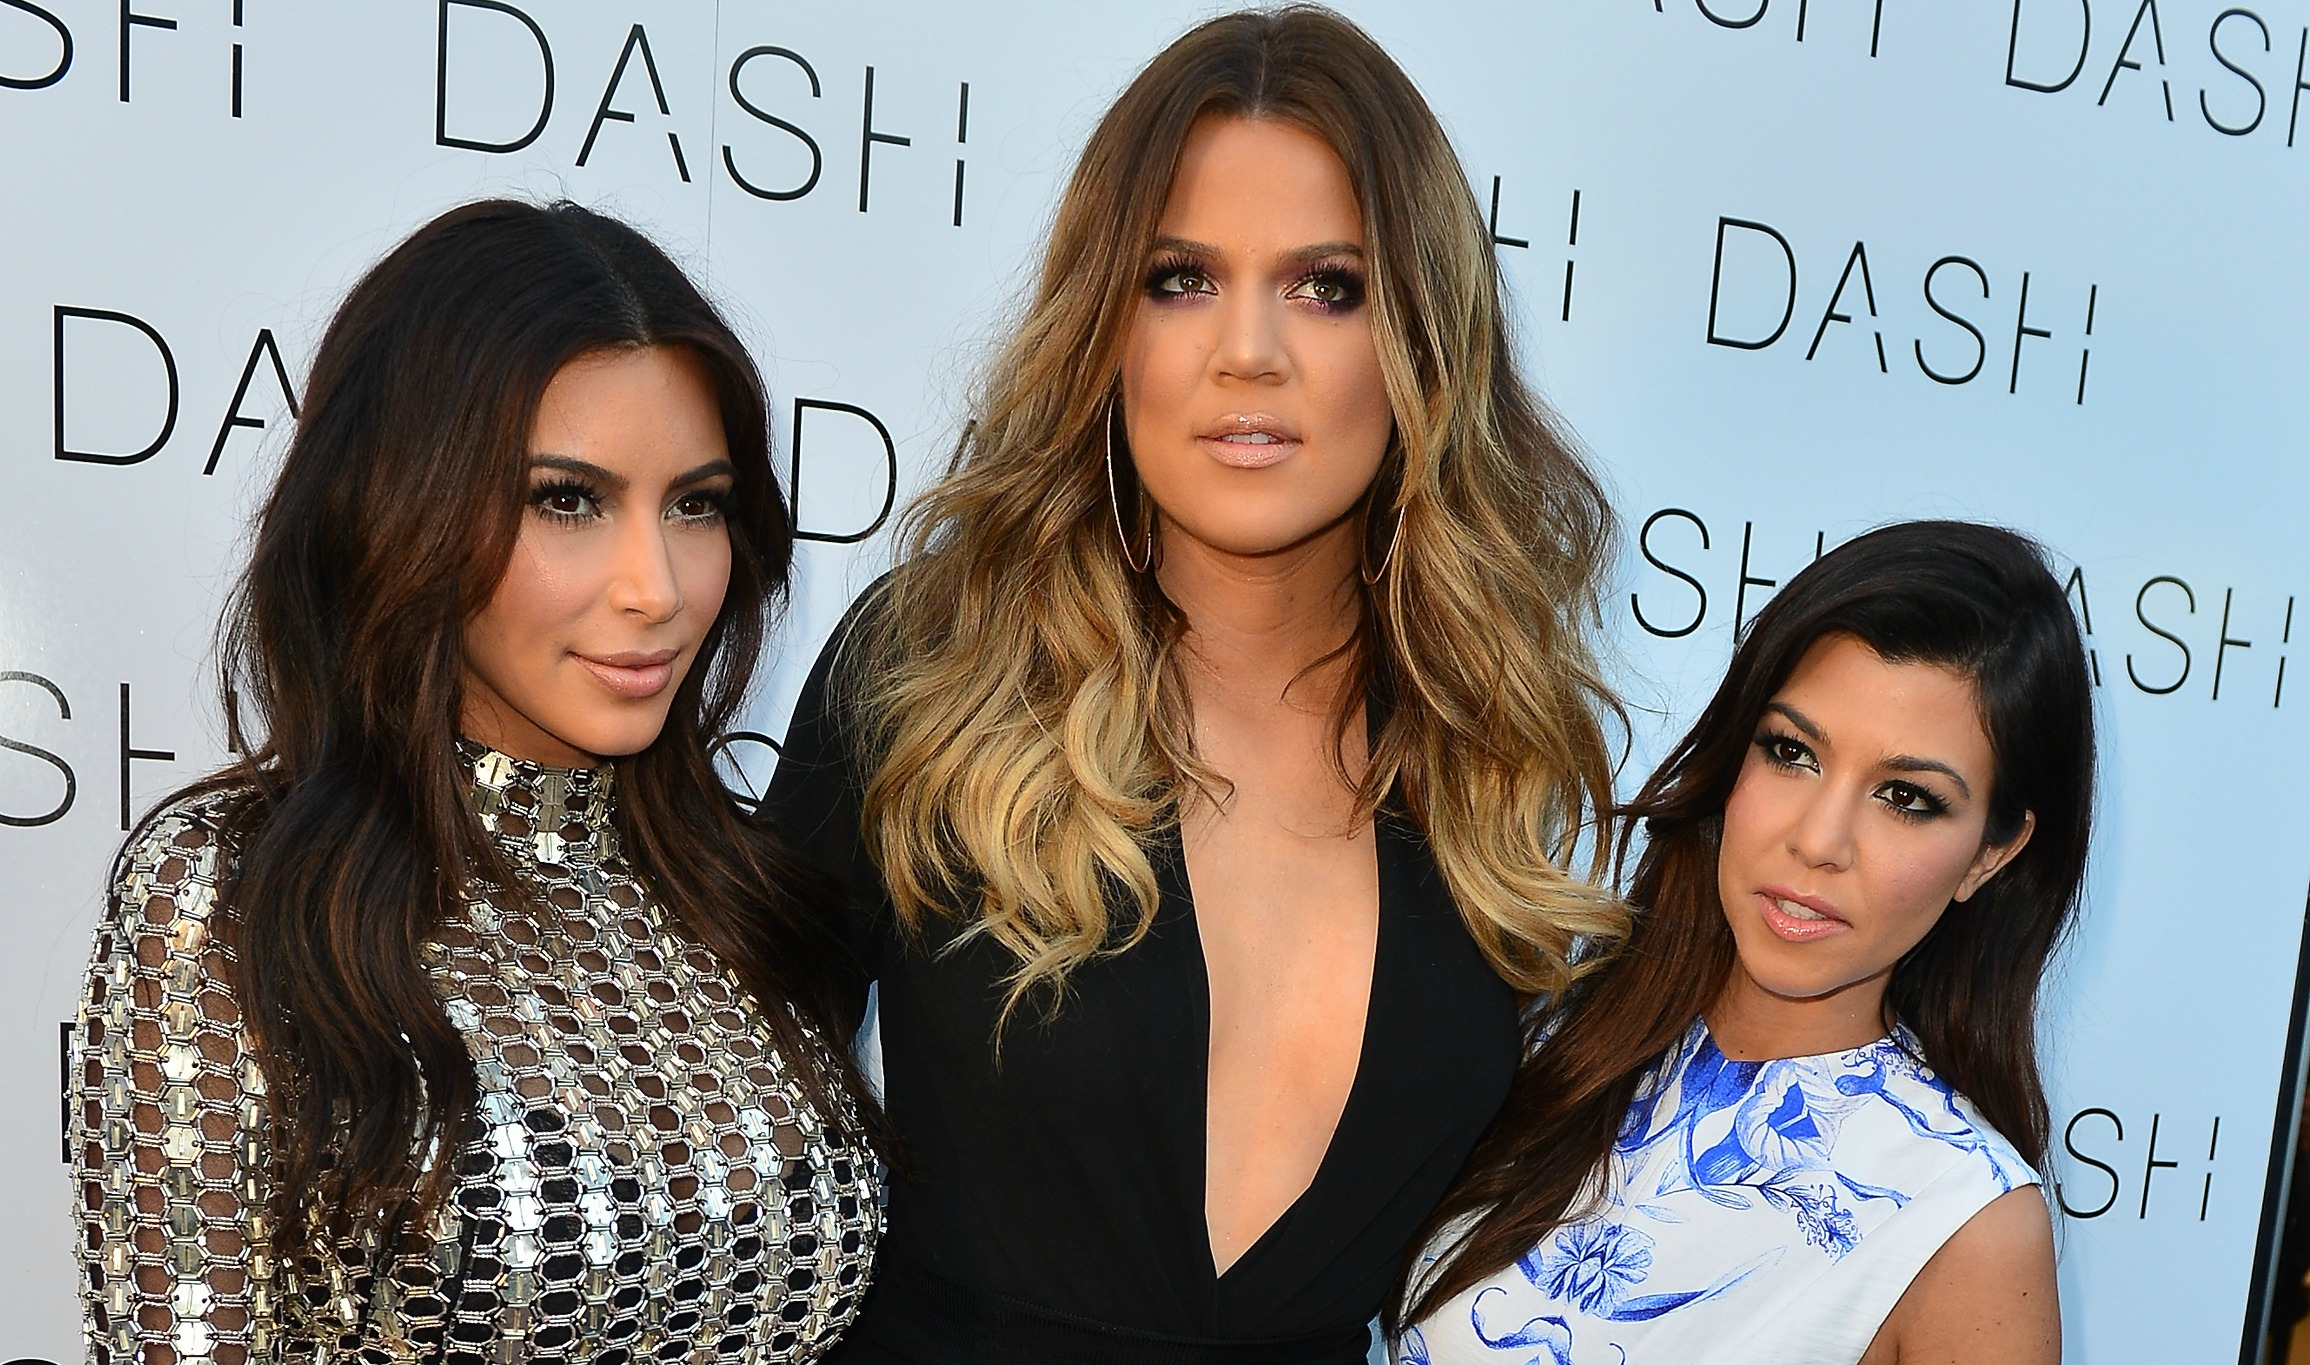 Who does Kris Jenner prefer out of her daughters?